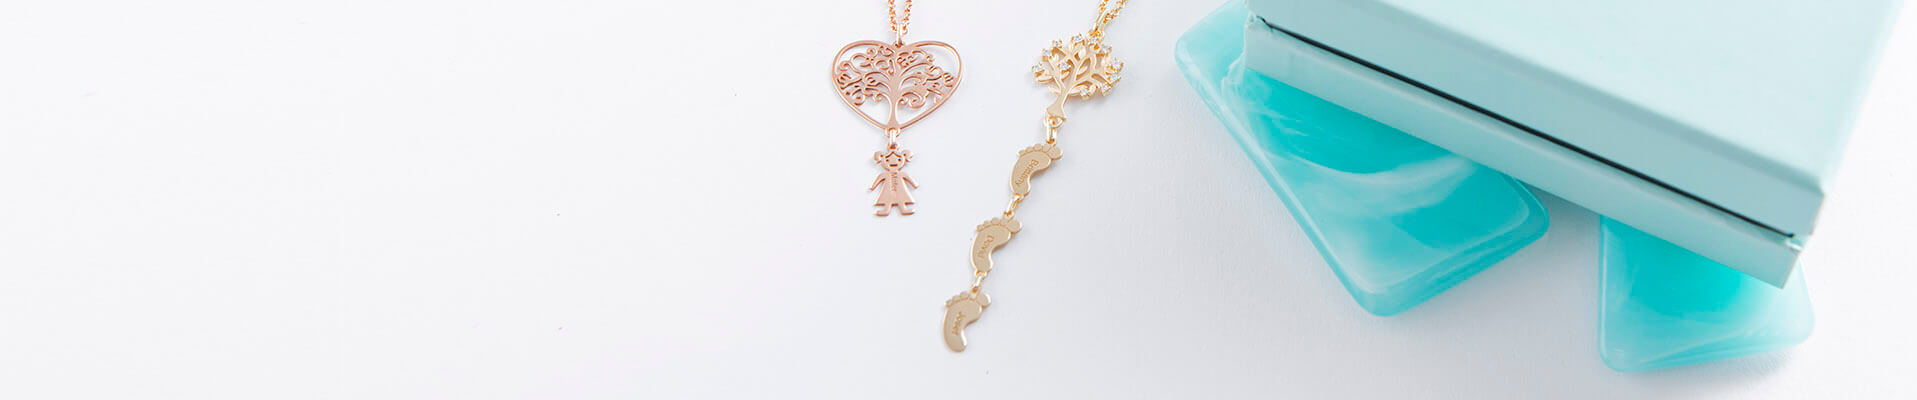 tree of life jewelry web banner